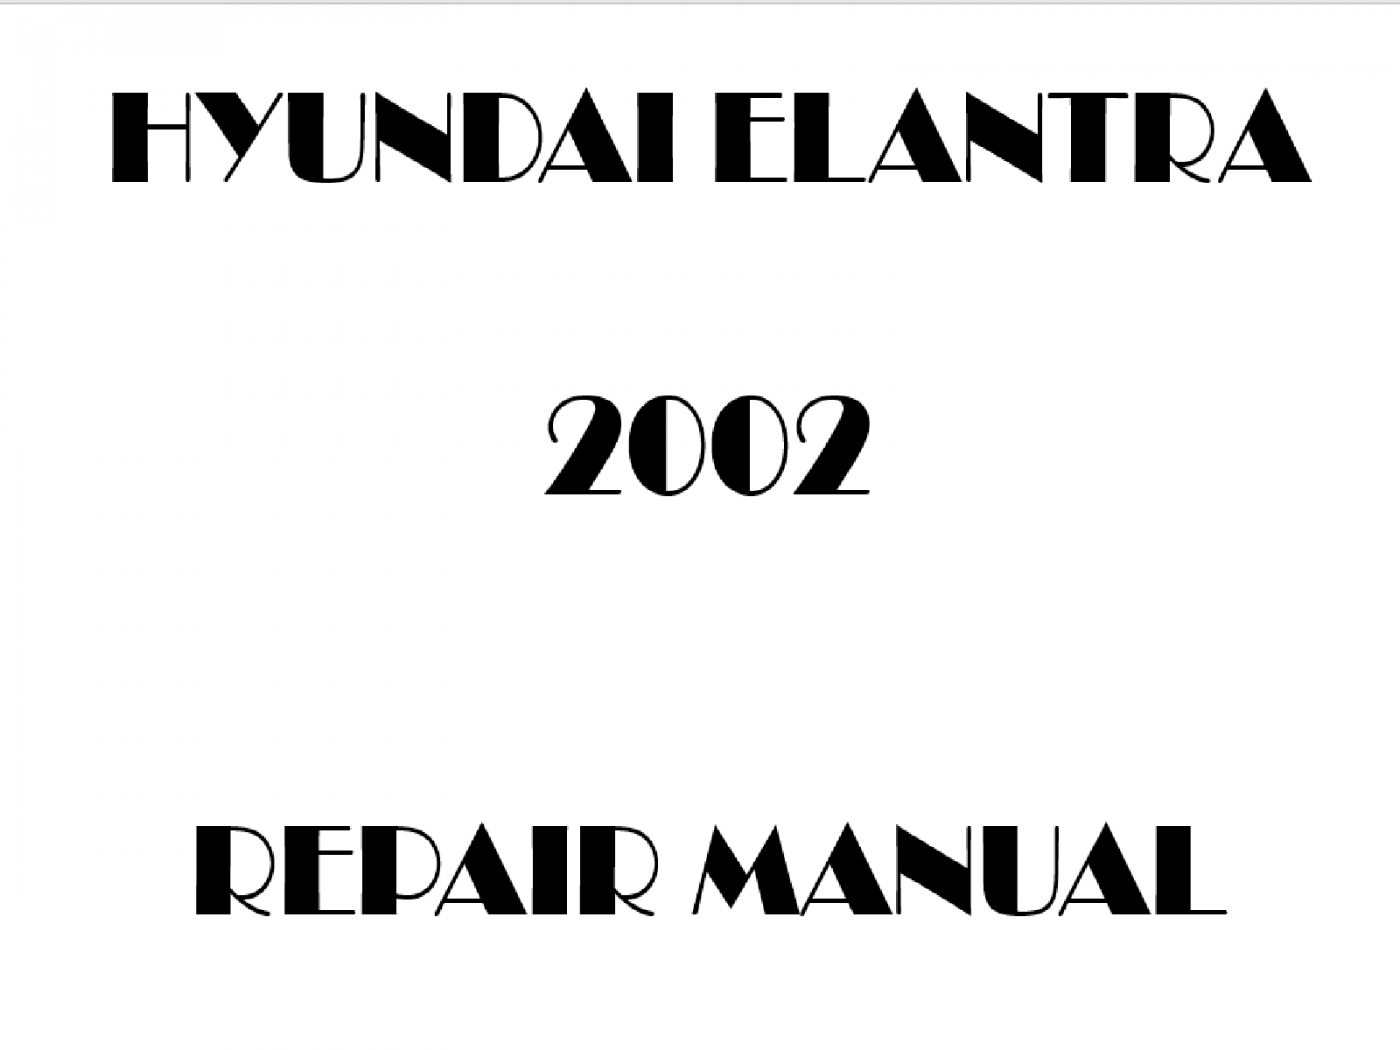 2002 Hyundai Elantra Repair Manual